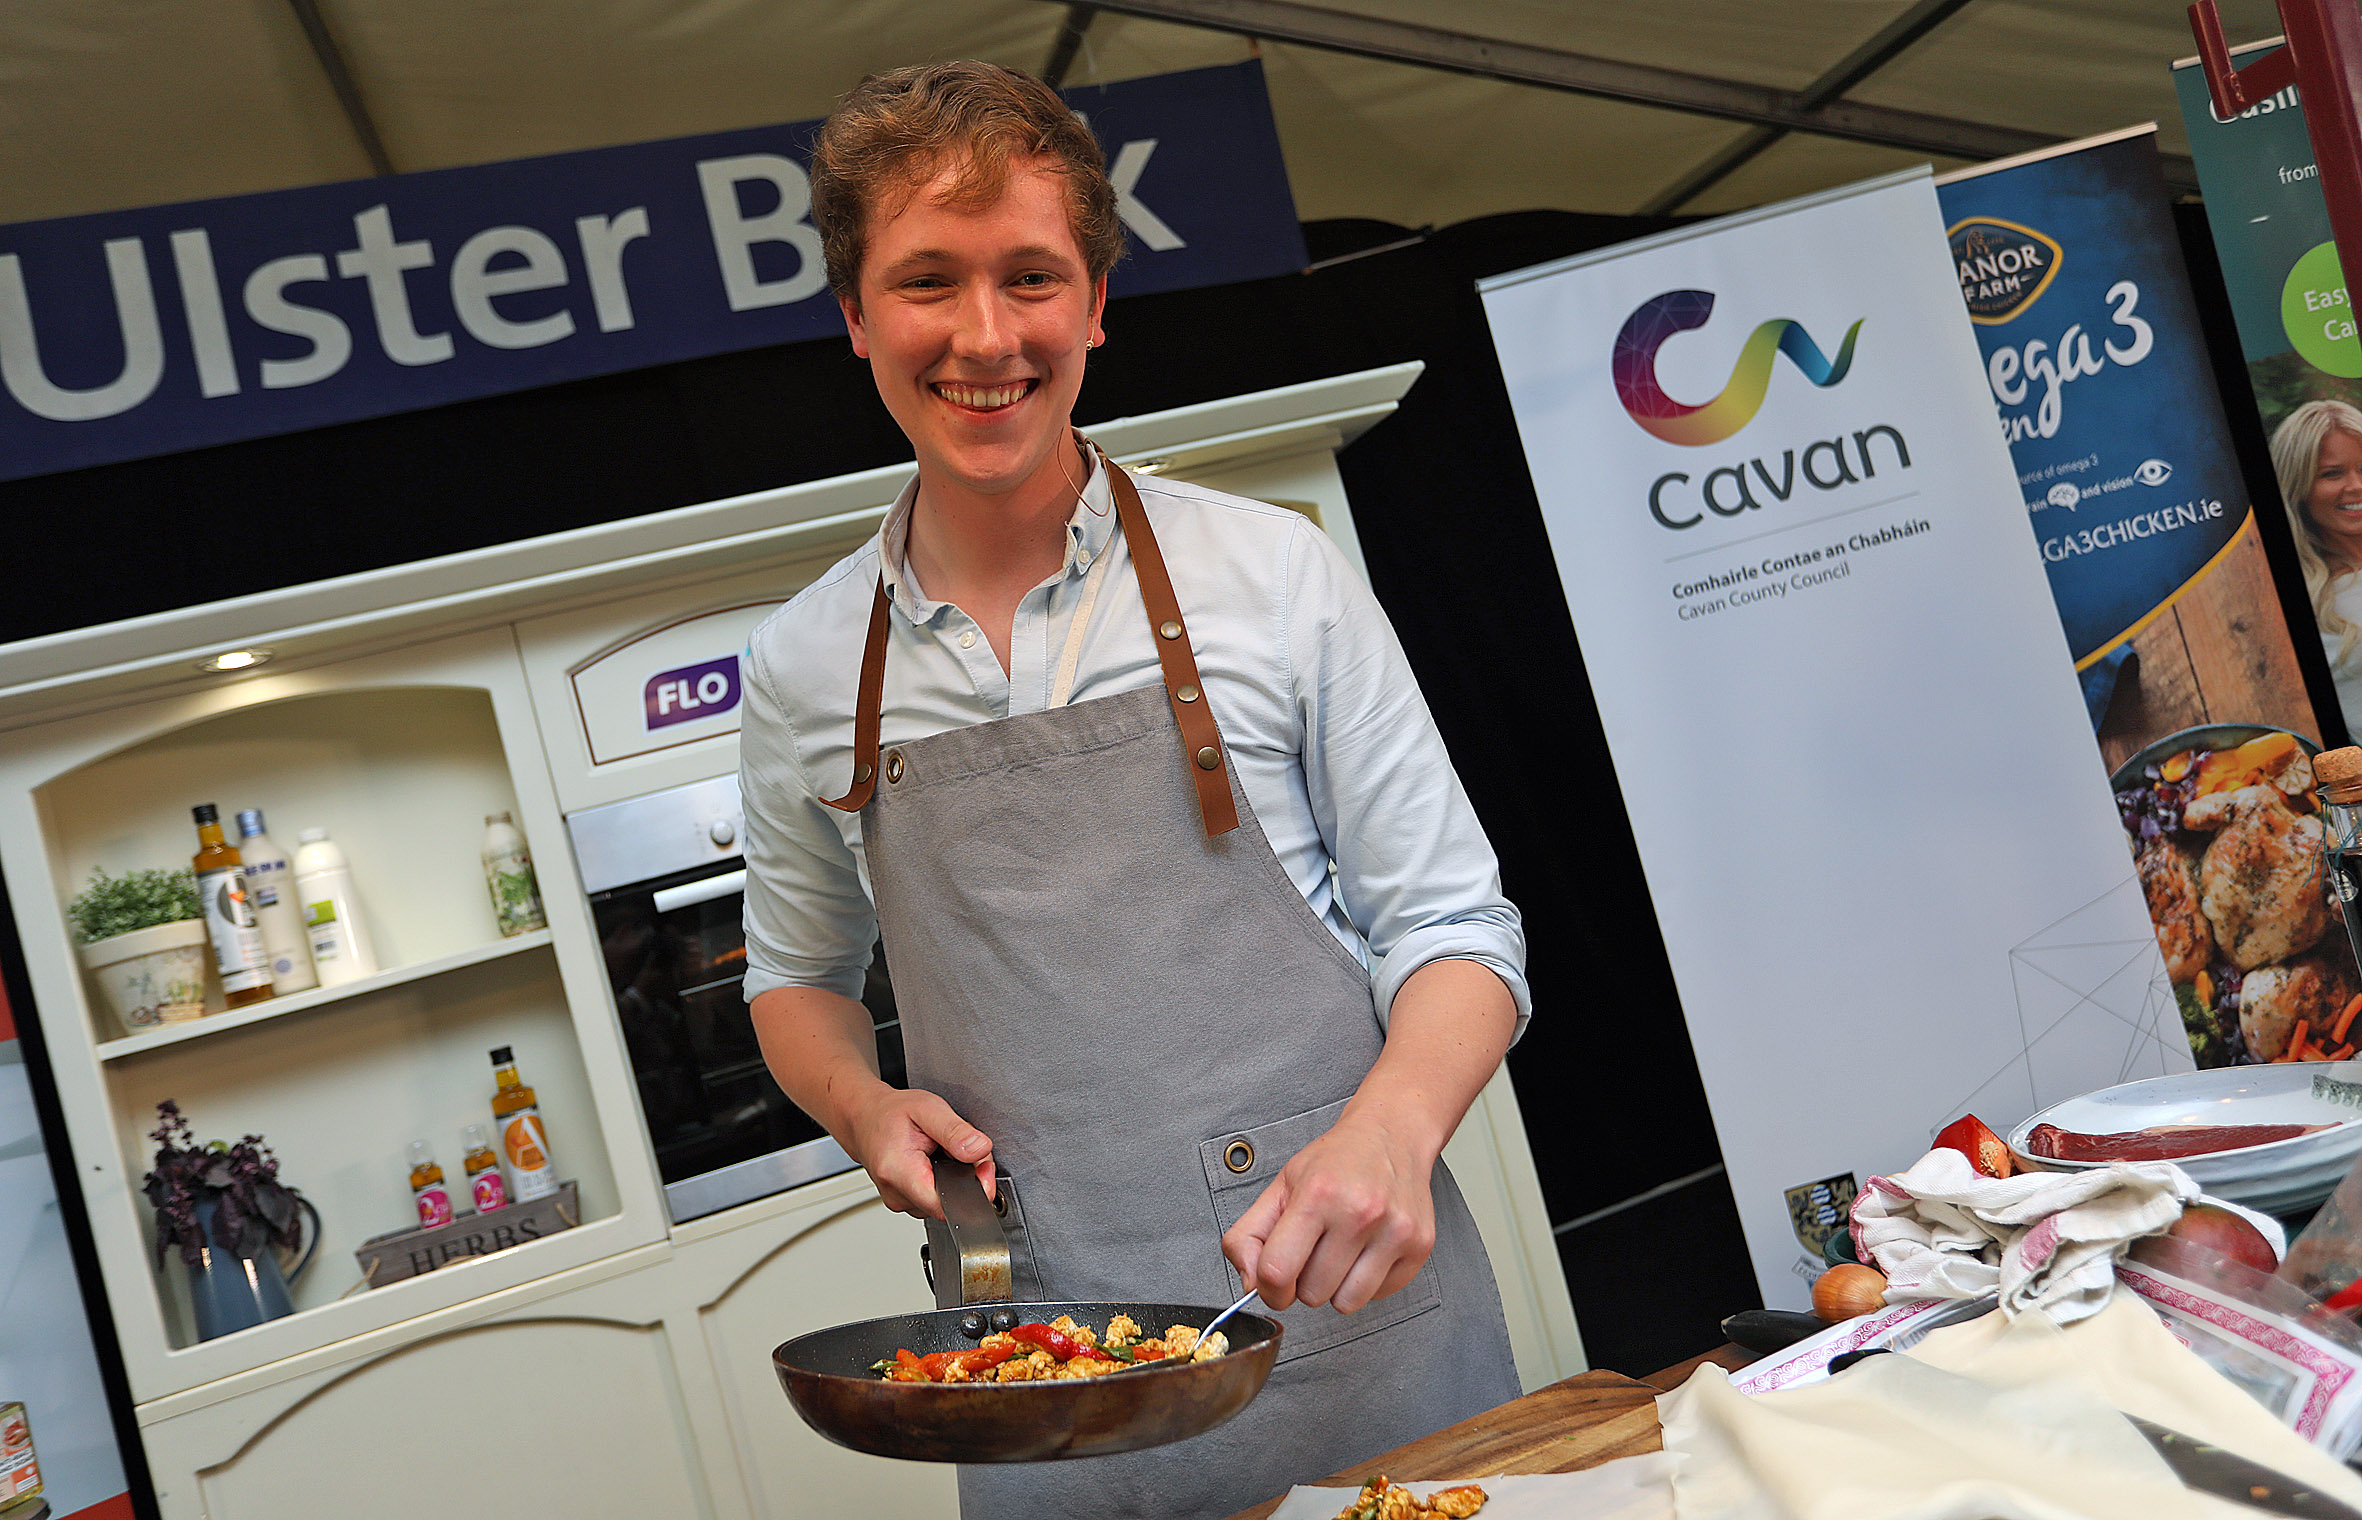 Cavan's own Chef Adrian will be cooking at the Ulster Bank Chefs' Kitchen at Taste of Cavan 2019